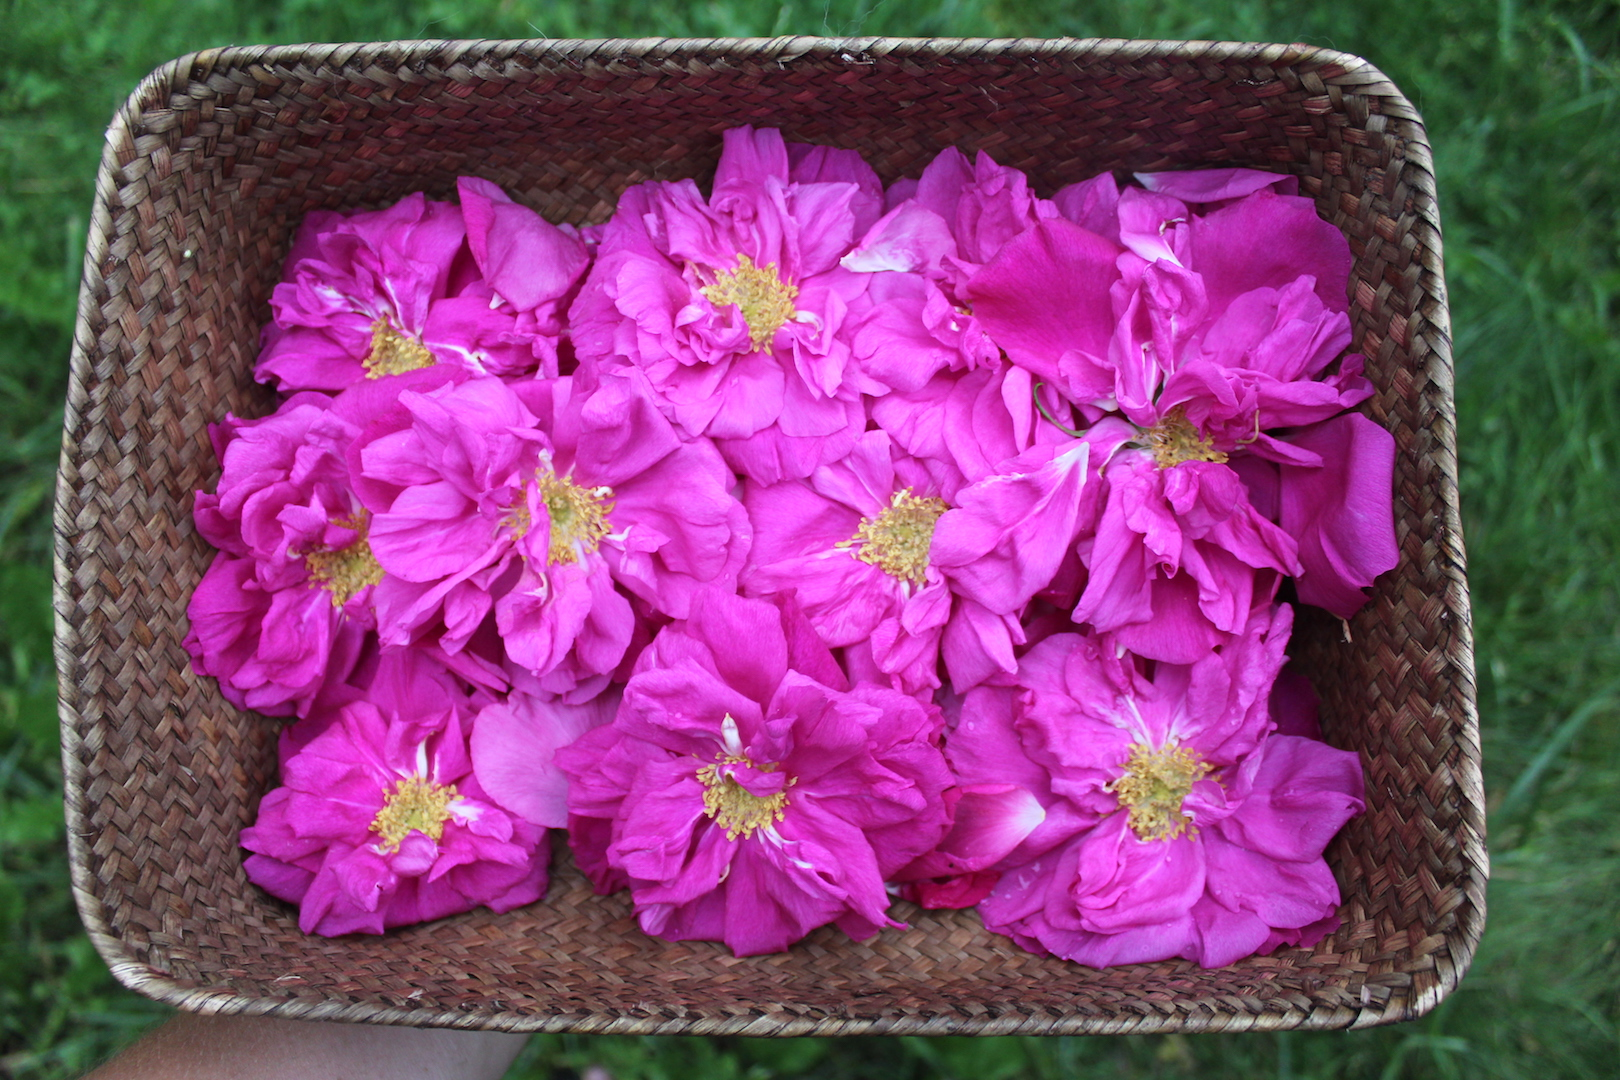 Harvesting Wild Roses for Cordial